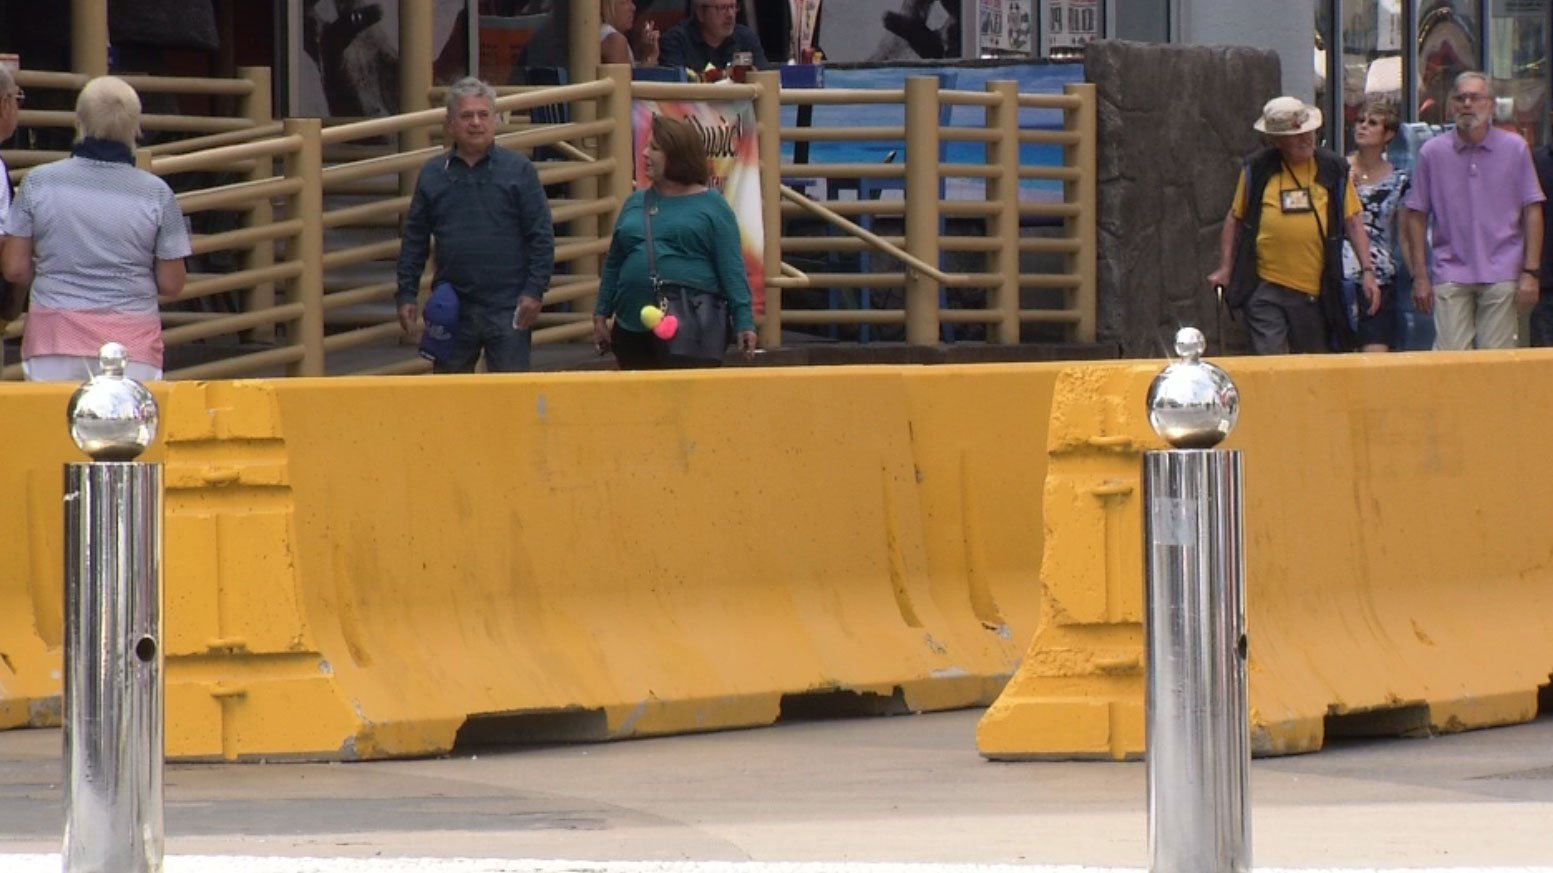 Concrete barriers were added to the Fremont Street Experience. (Roger Bryner/FOX5)